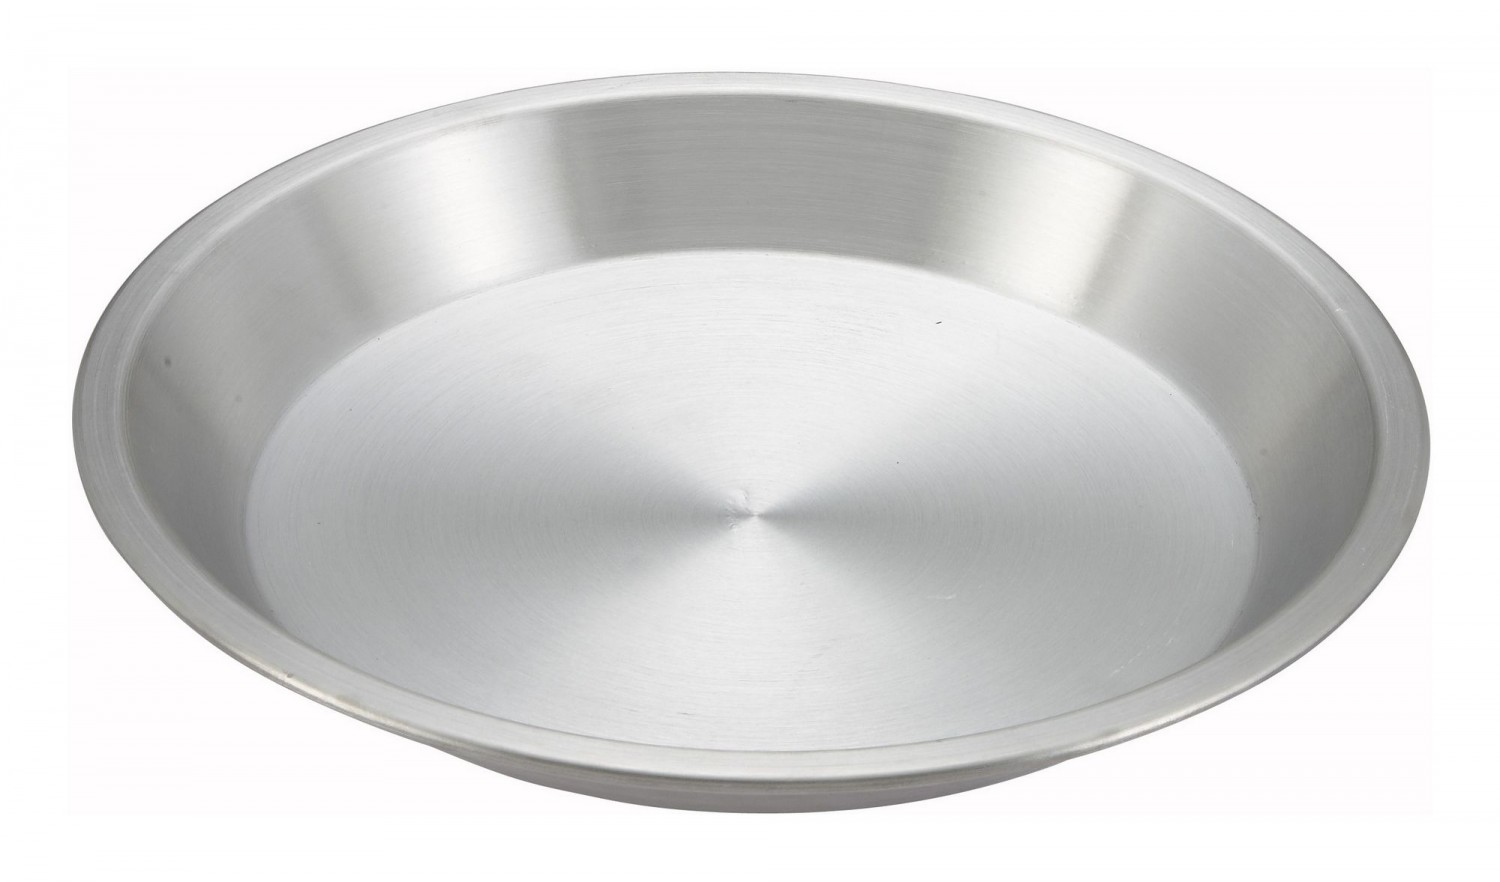 sc 1 st  TigerChef & Winco APPL-10 Aluminum Pie Plate 10